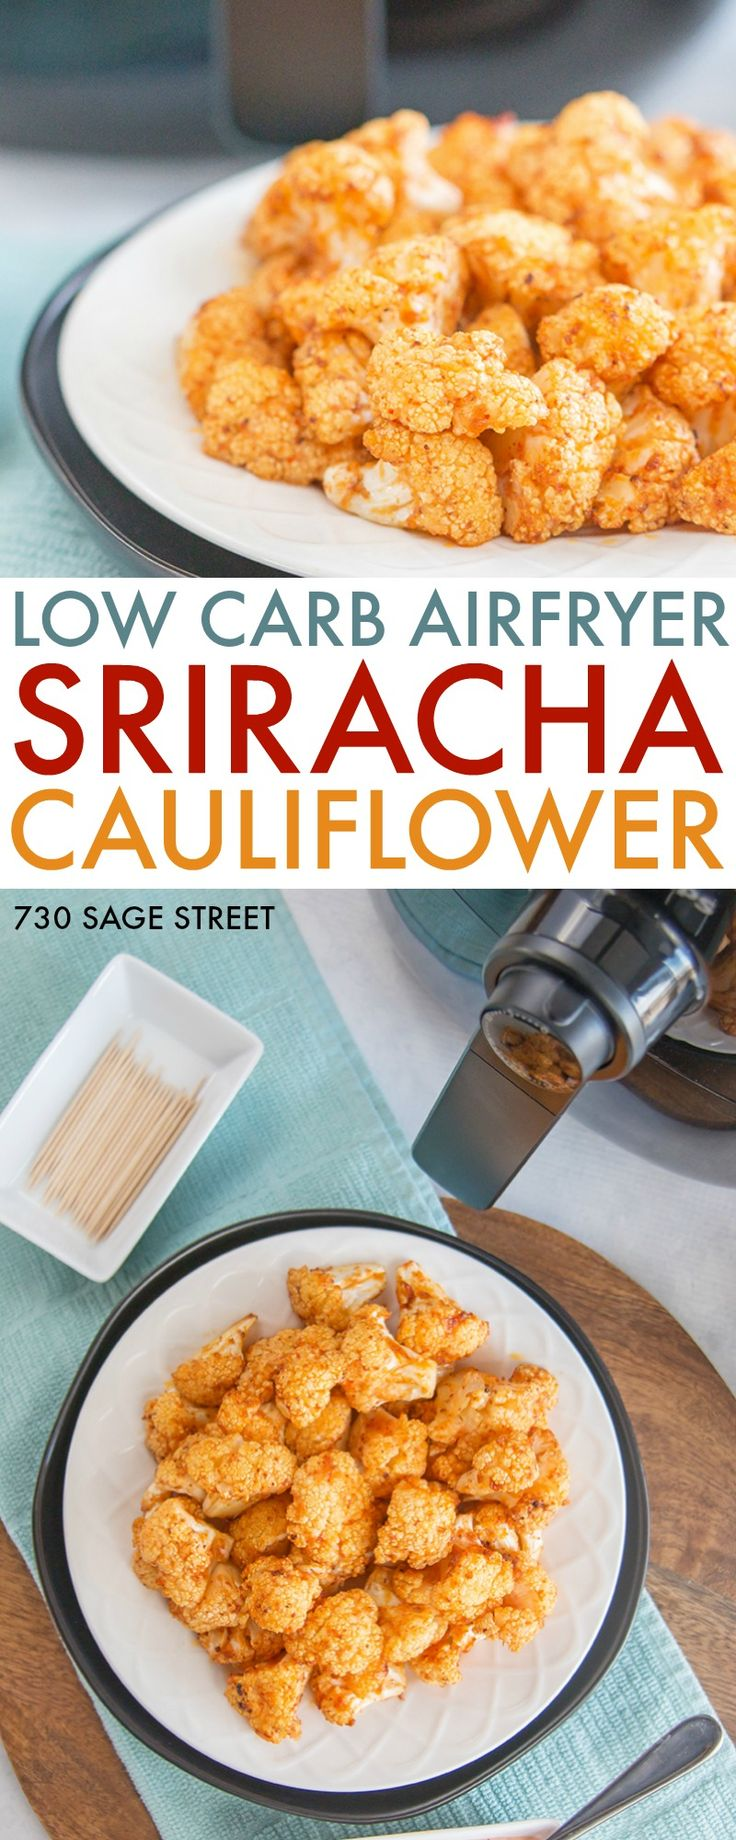 Spice up game day with this delicious Sriracha cauliflower bites airfryer recipe. #lowcarb #appetizer #gameday #cauliflower